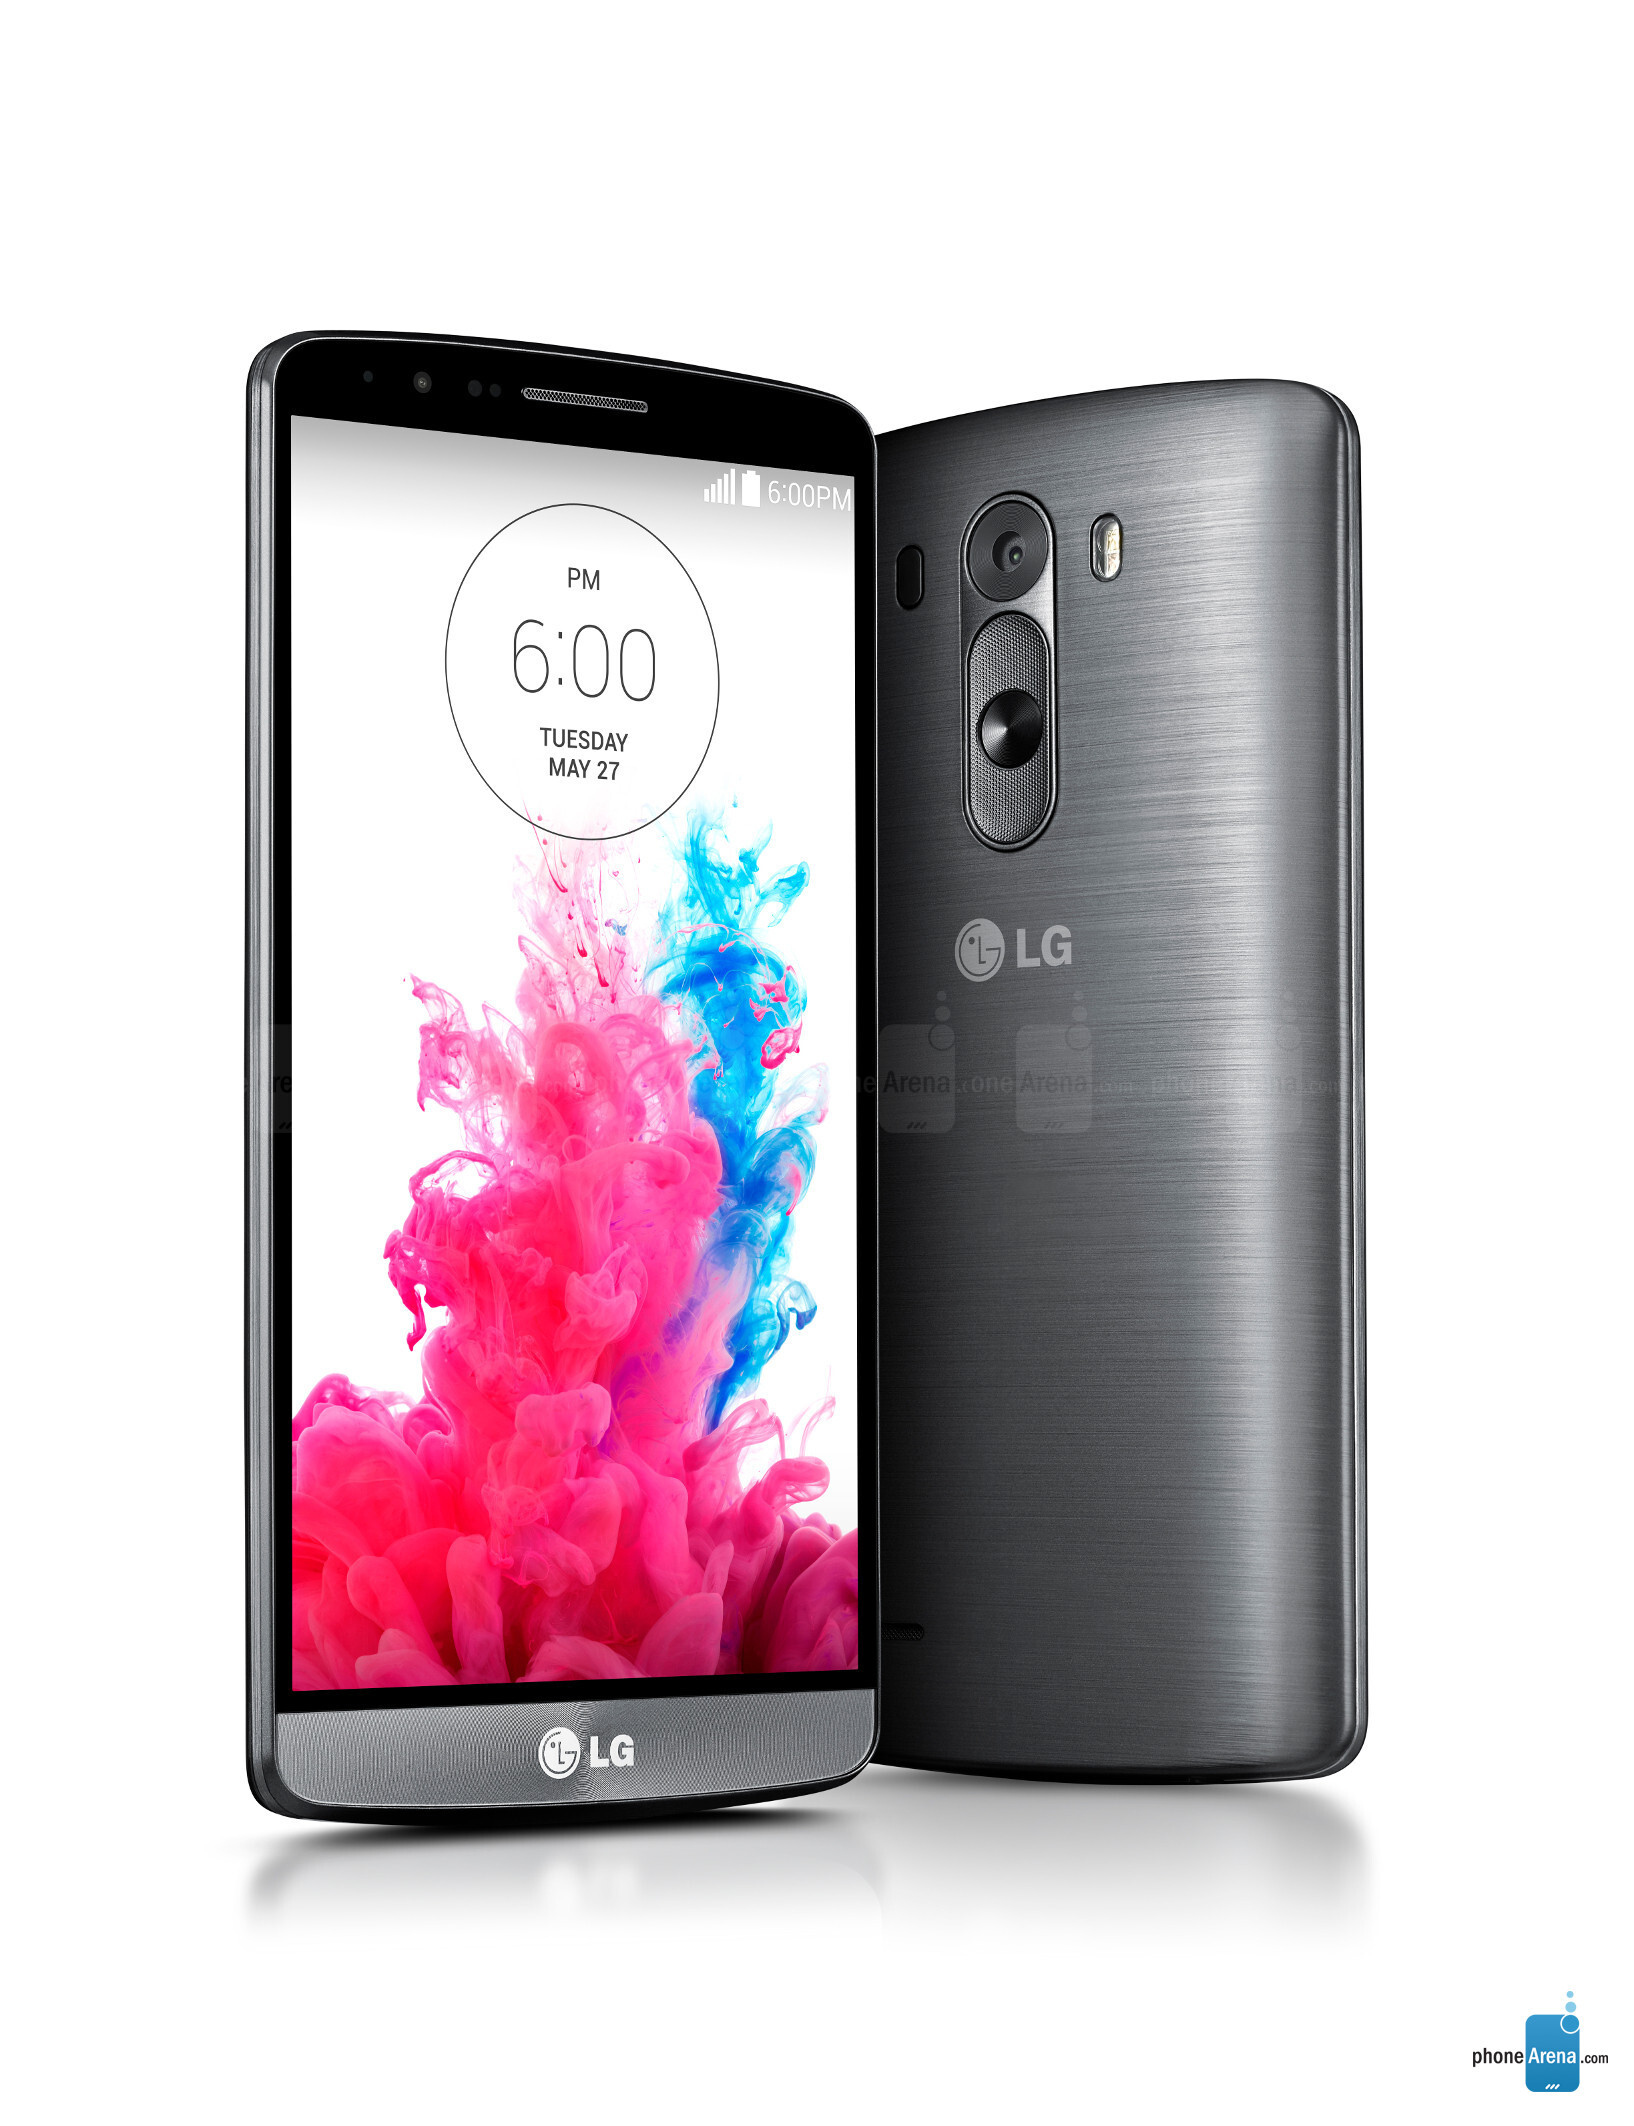 LG G3: still holding strong after 6 months on the market